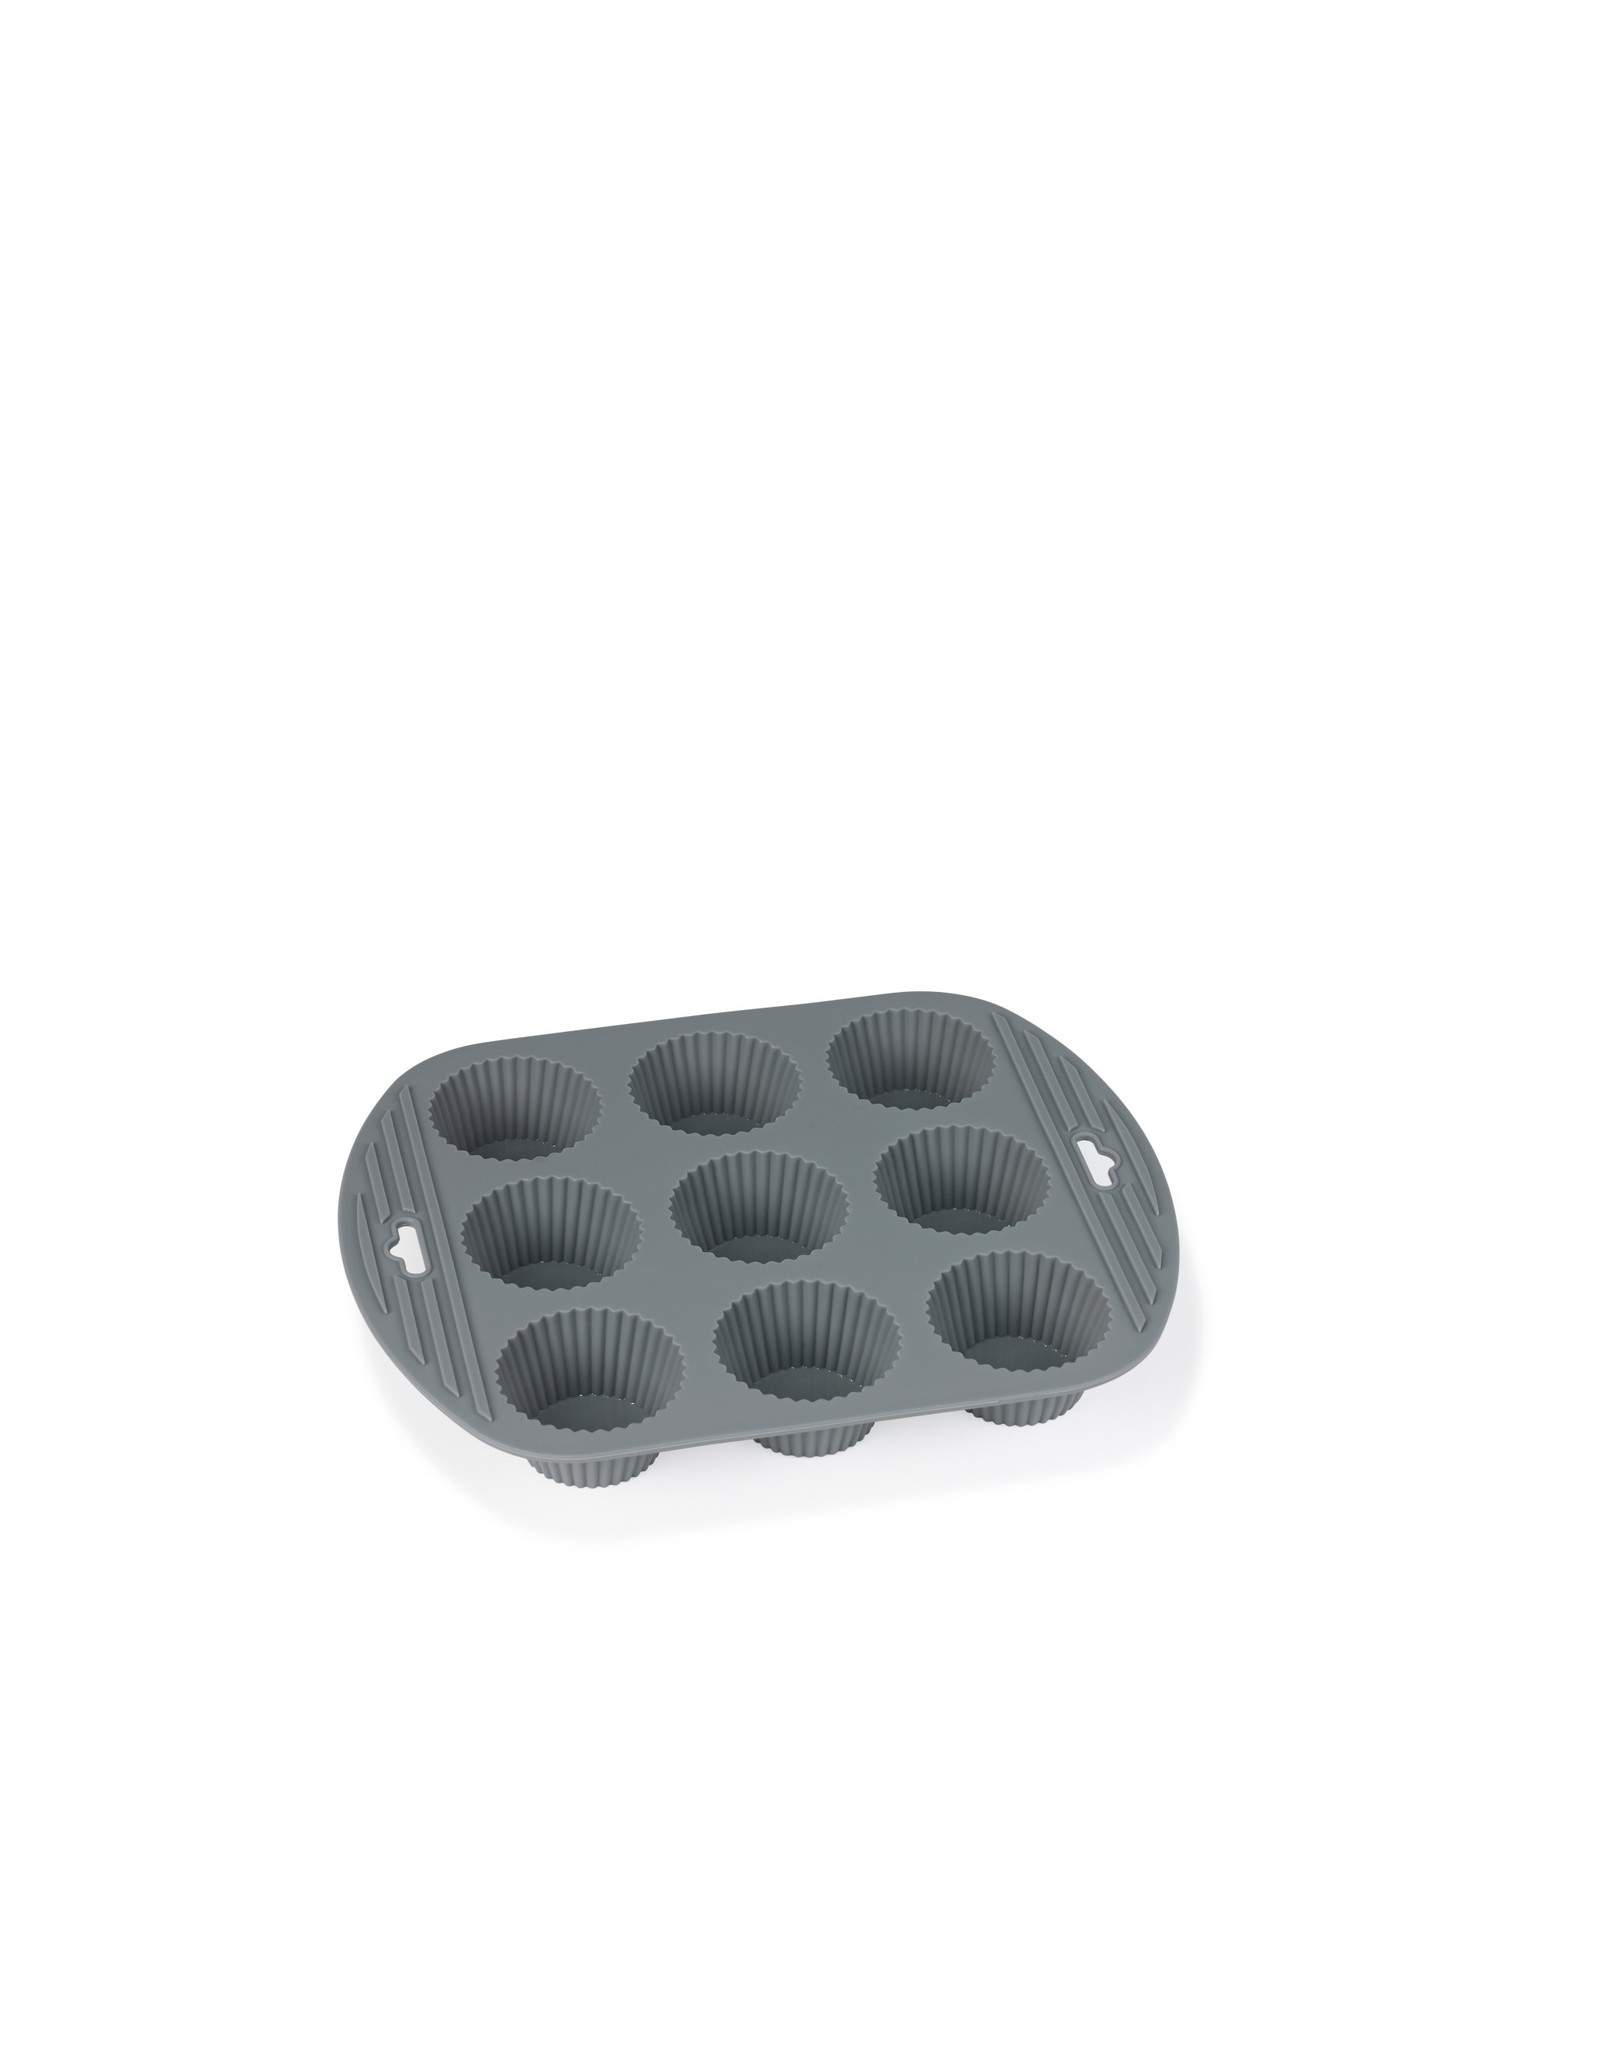 FUNKTION FUNKTION 225025 SILICONEN MUFFIN MOULD 9 HOLES GREY